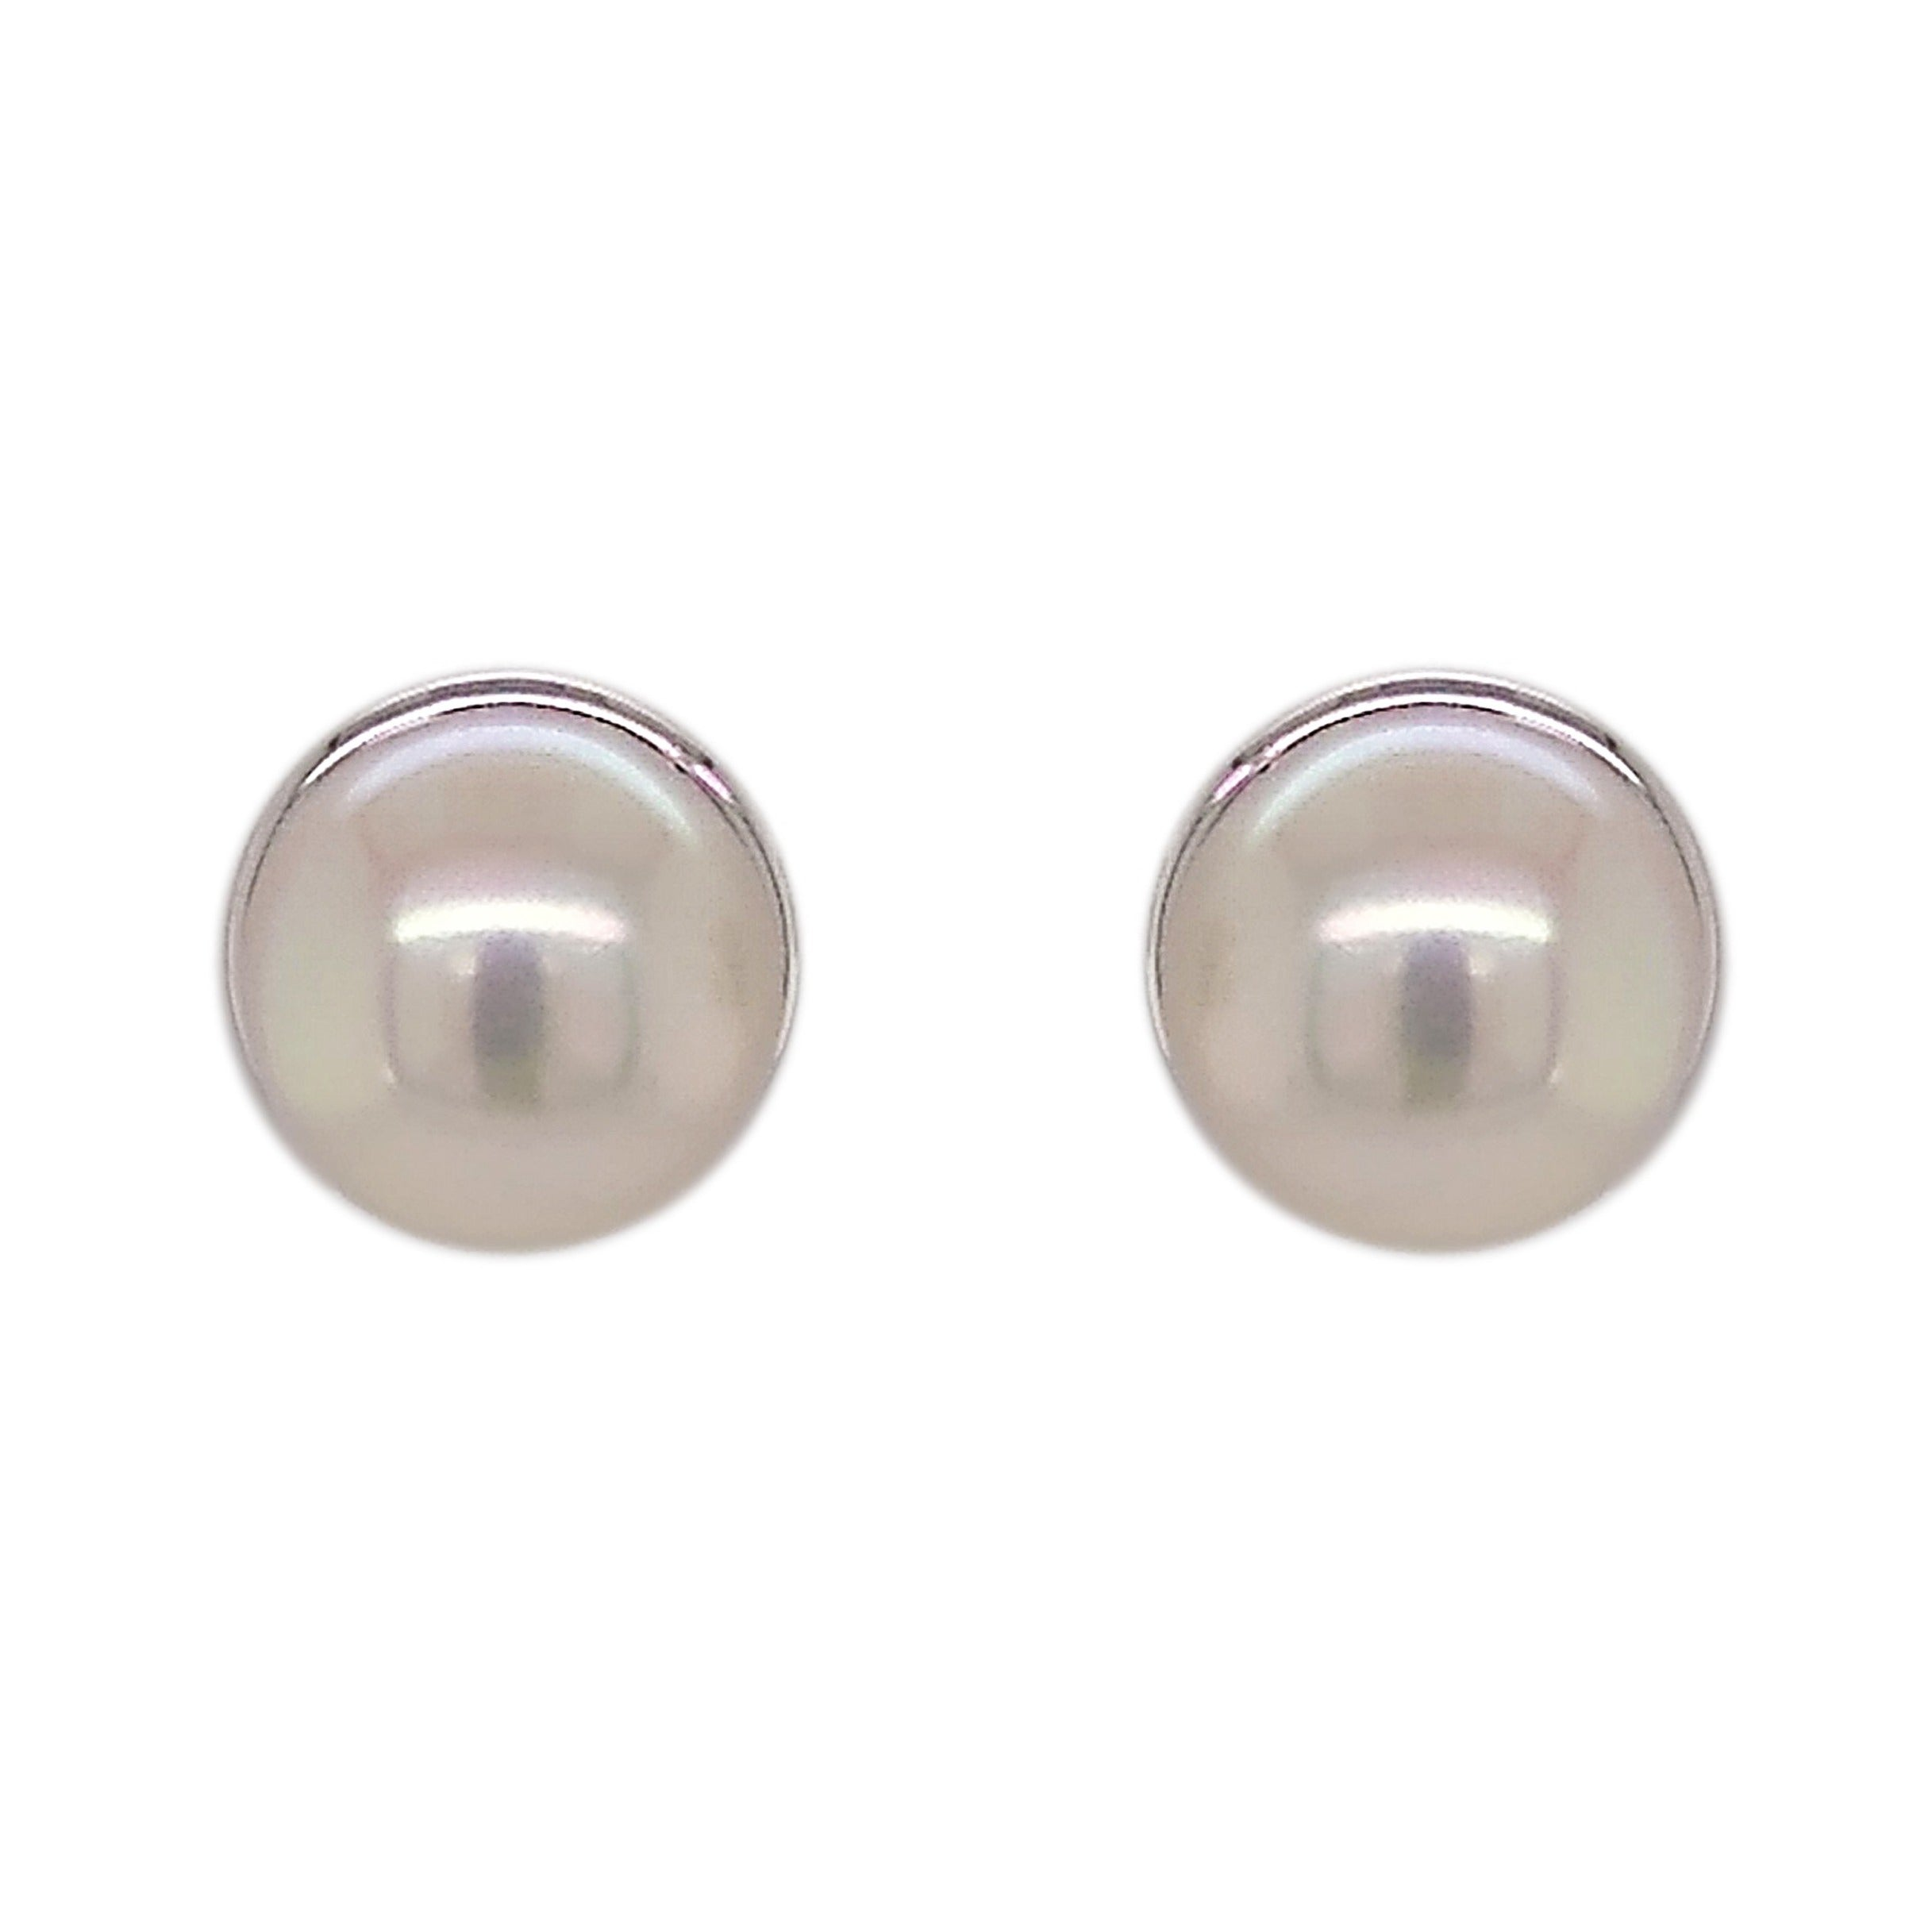 9ct White Gold Freshwater Bouton Pearl & Surround Stud Earrings